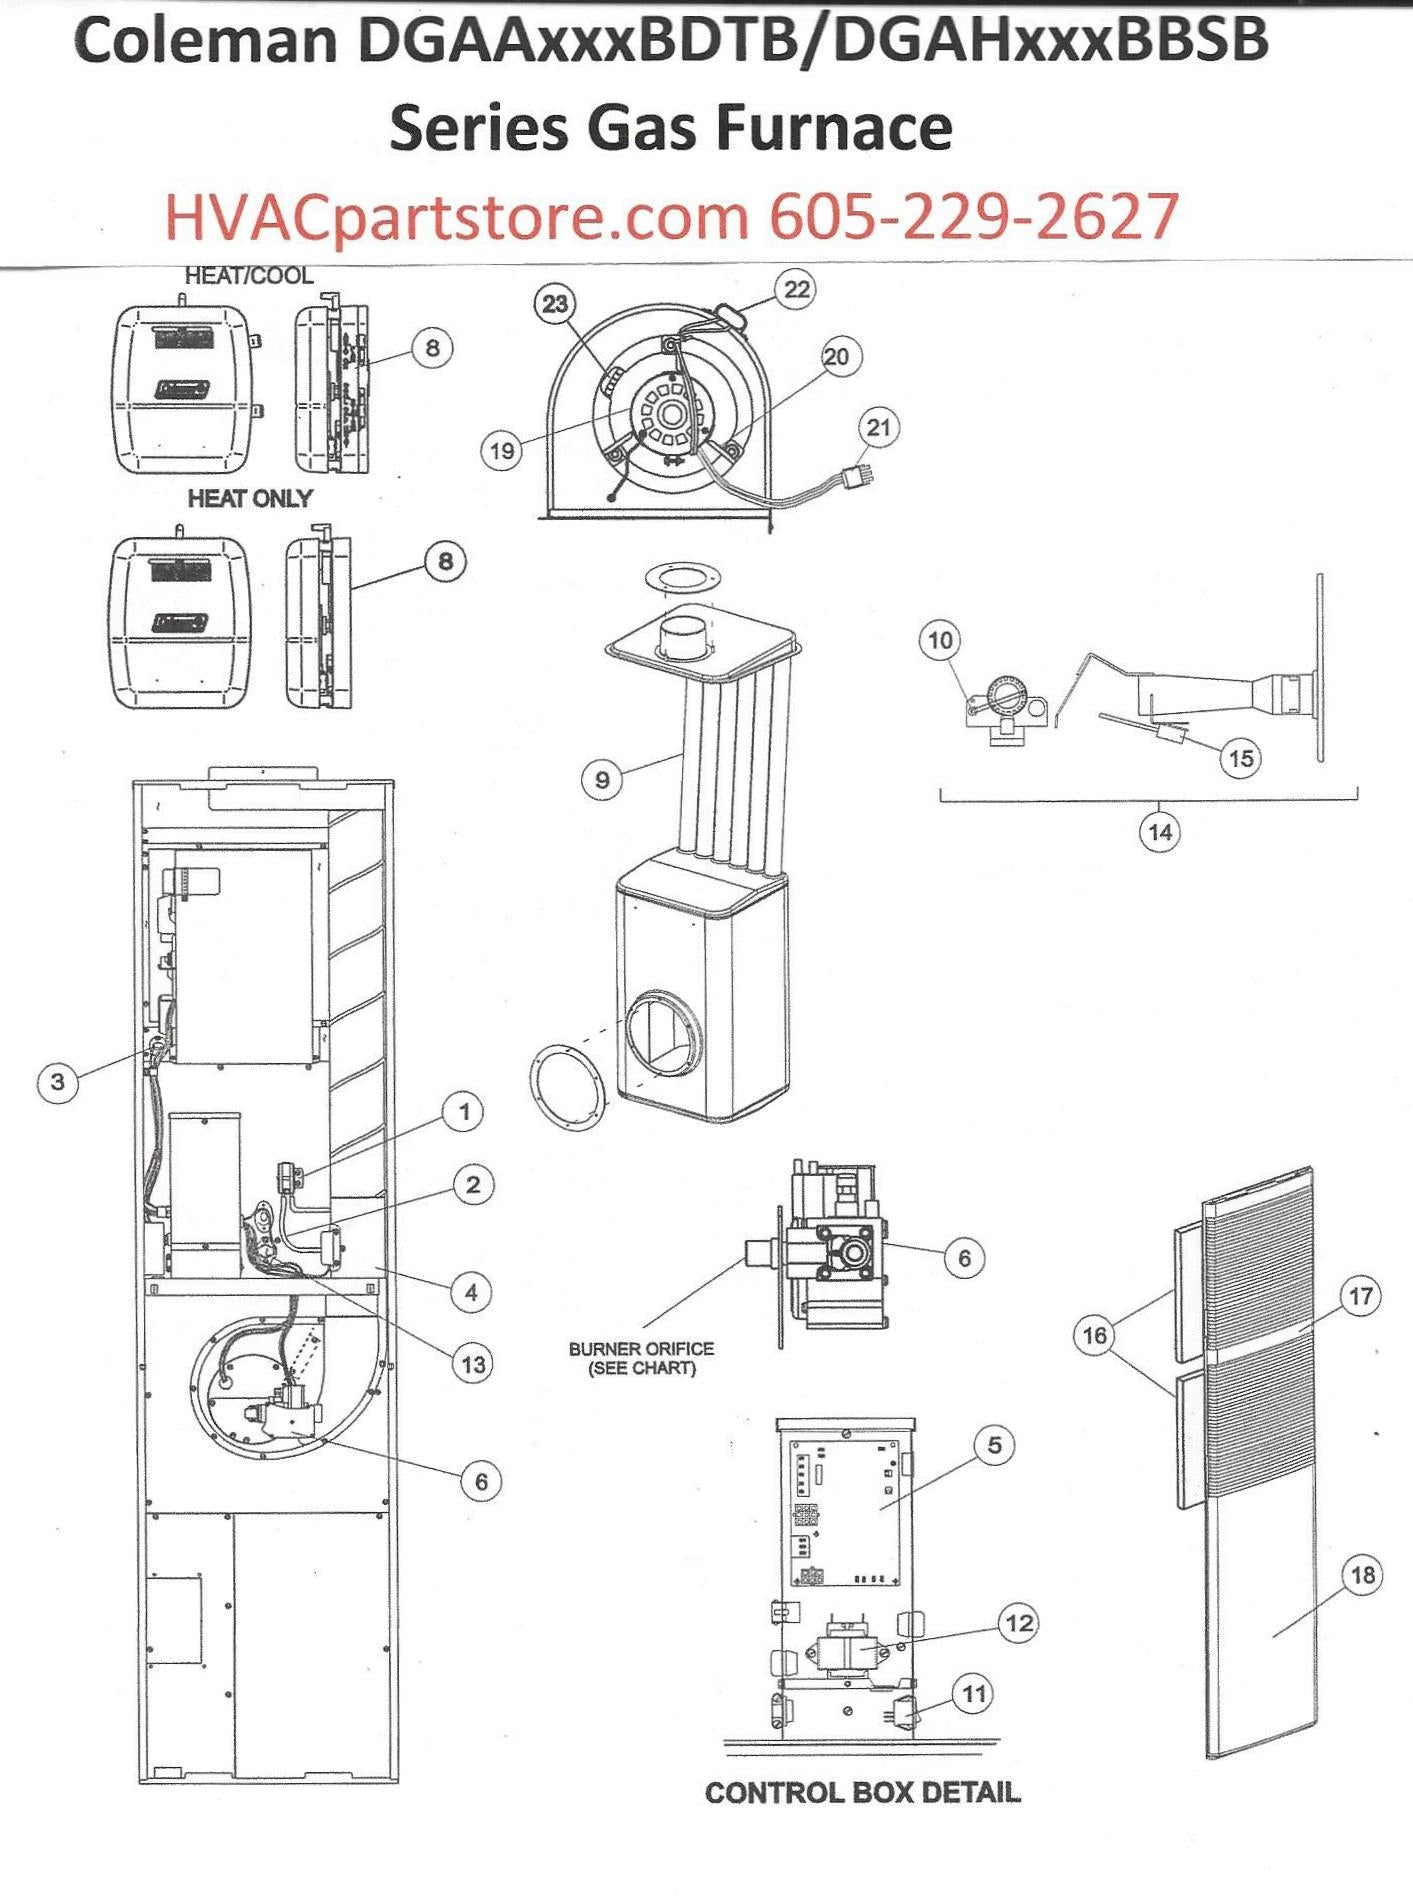 dgaa077bdtb coleman gas furnace parts hvacpartstore atwood rv furnace wiring diagram click here to view a manual for the dgaa077bdtb which includes wiring diagrams